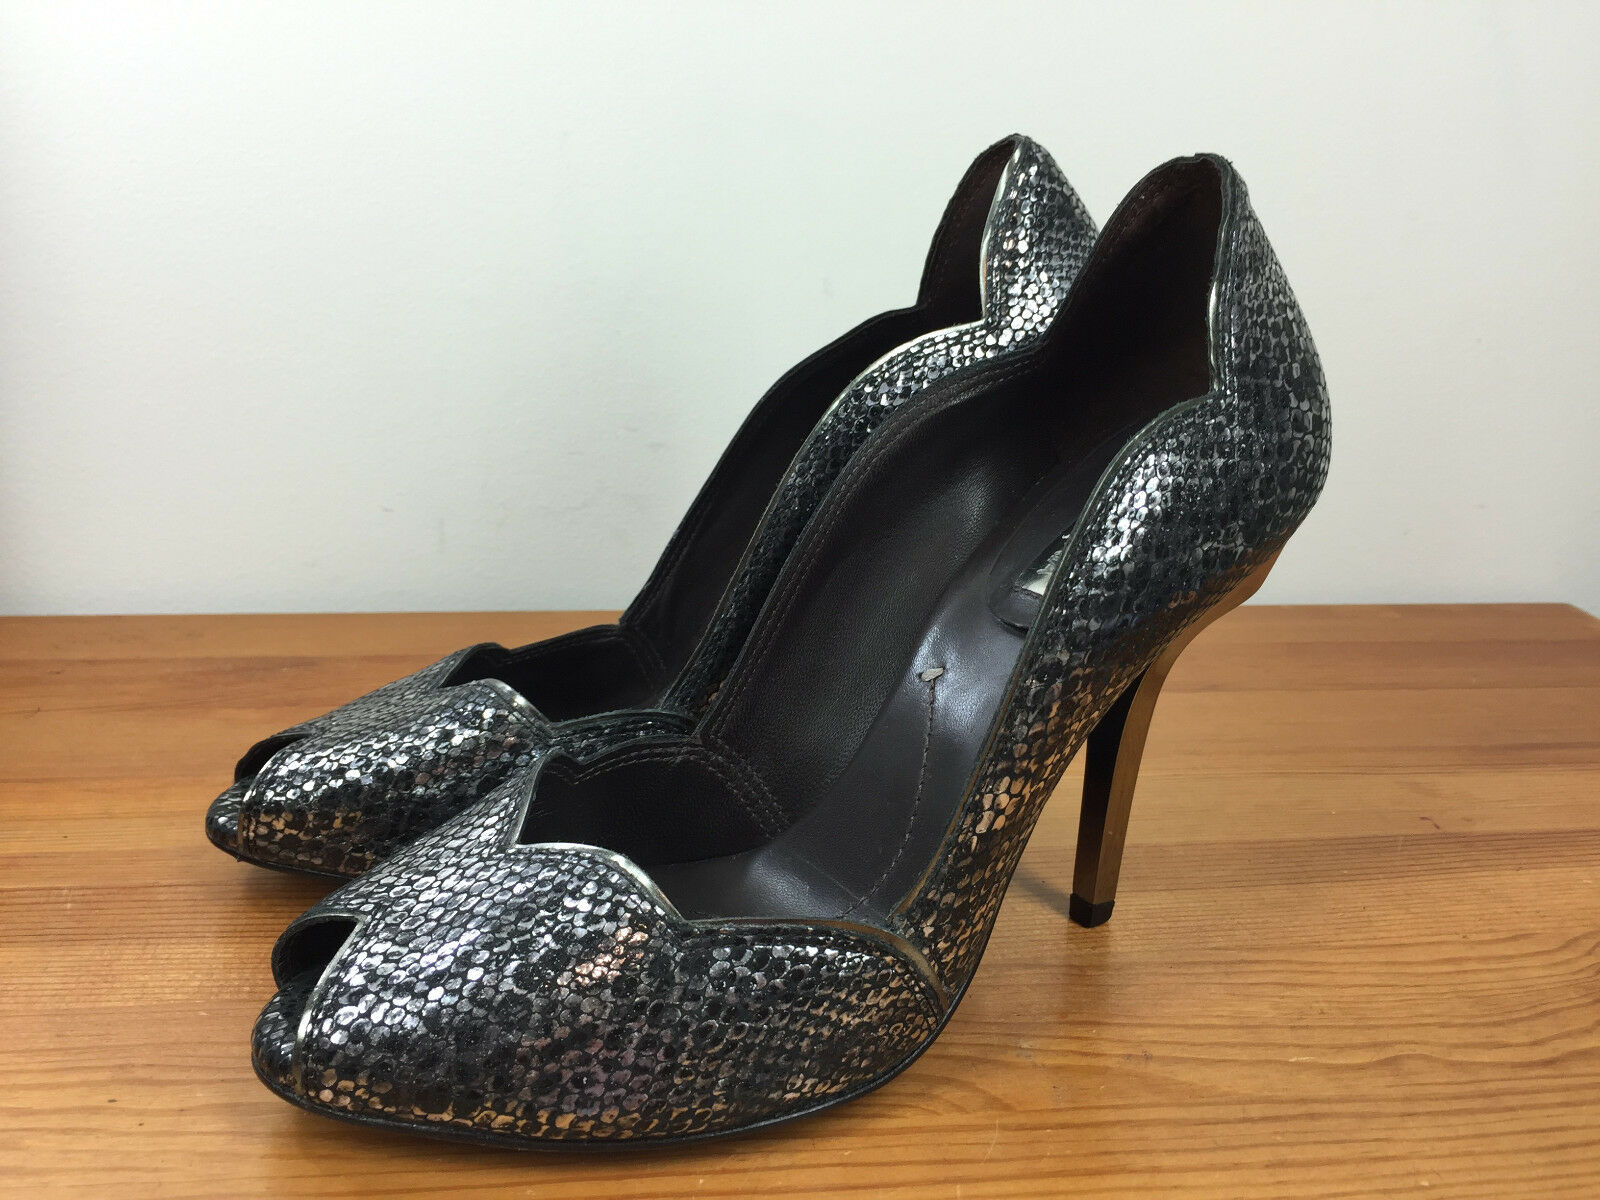 BCBG MaxAzria 9 Black Silver Heels Pumps Scalloped Snake Reptile Cocktail Formal